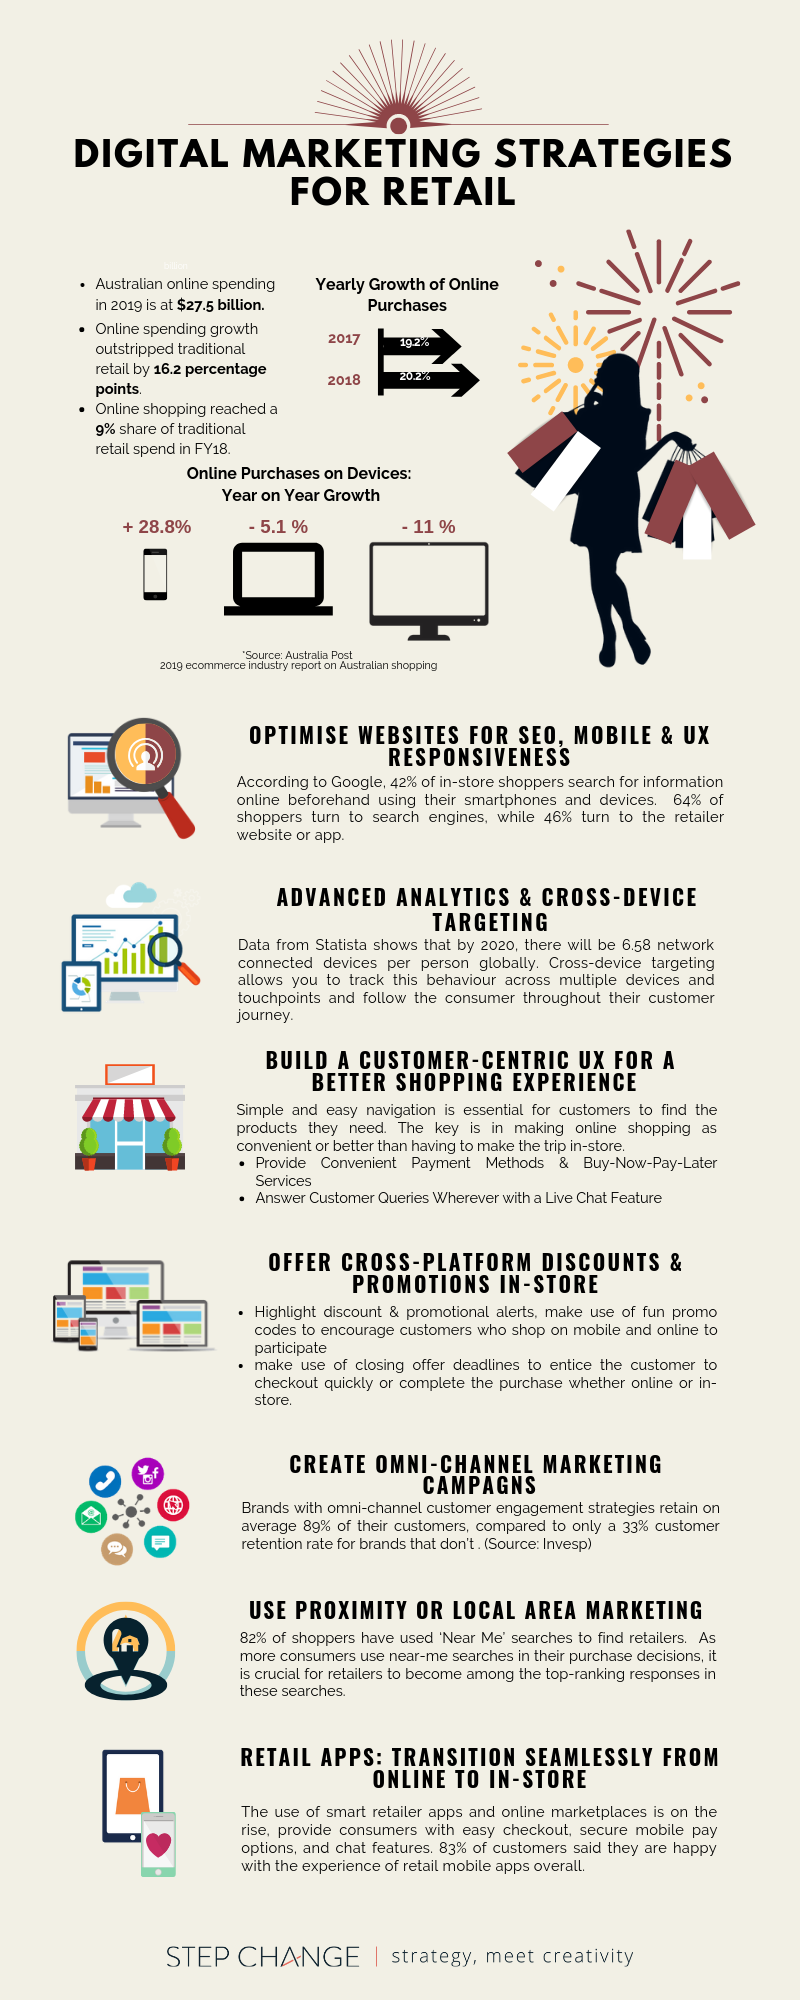 DIGITAL_MARKETING_STRATEGIES_FOR_RETAIL_v3